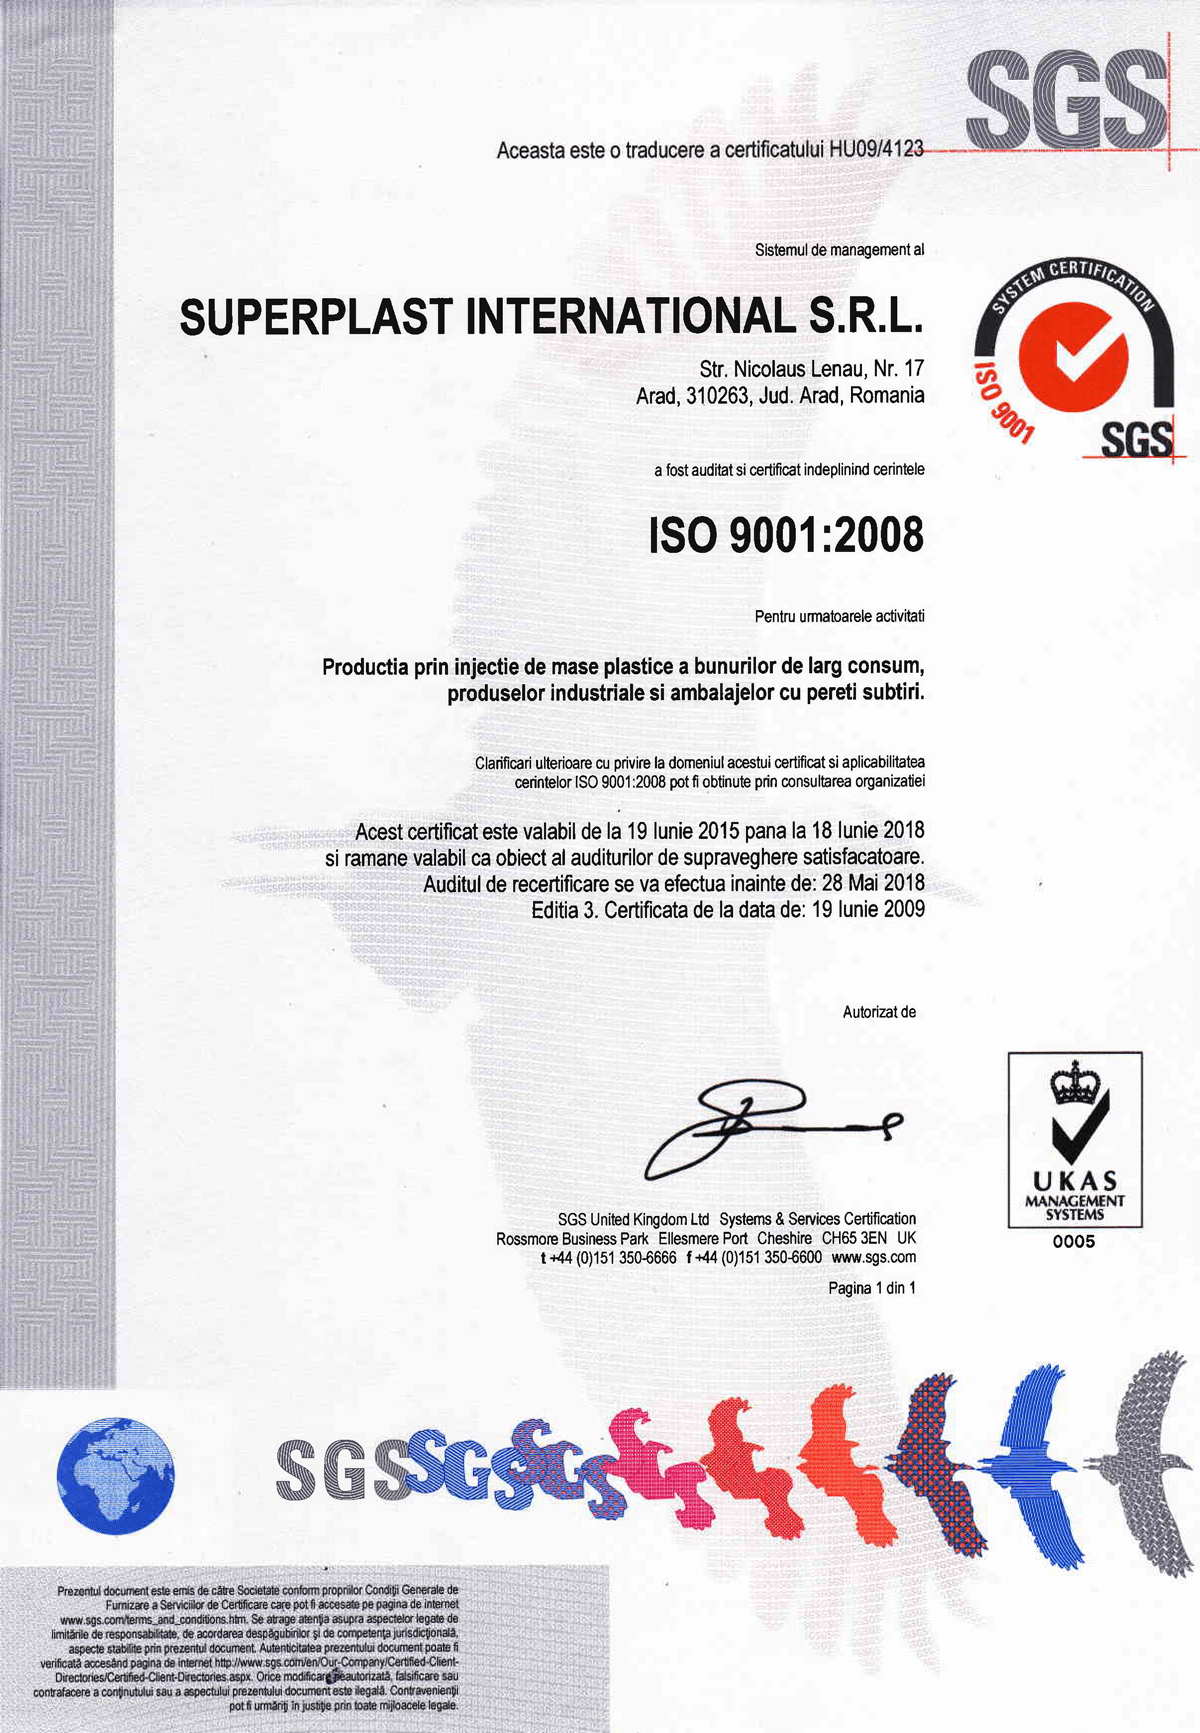 Superplast International Arad